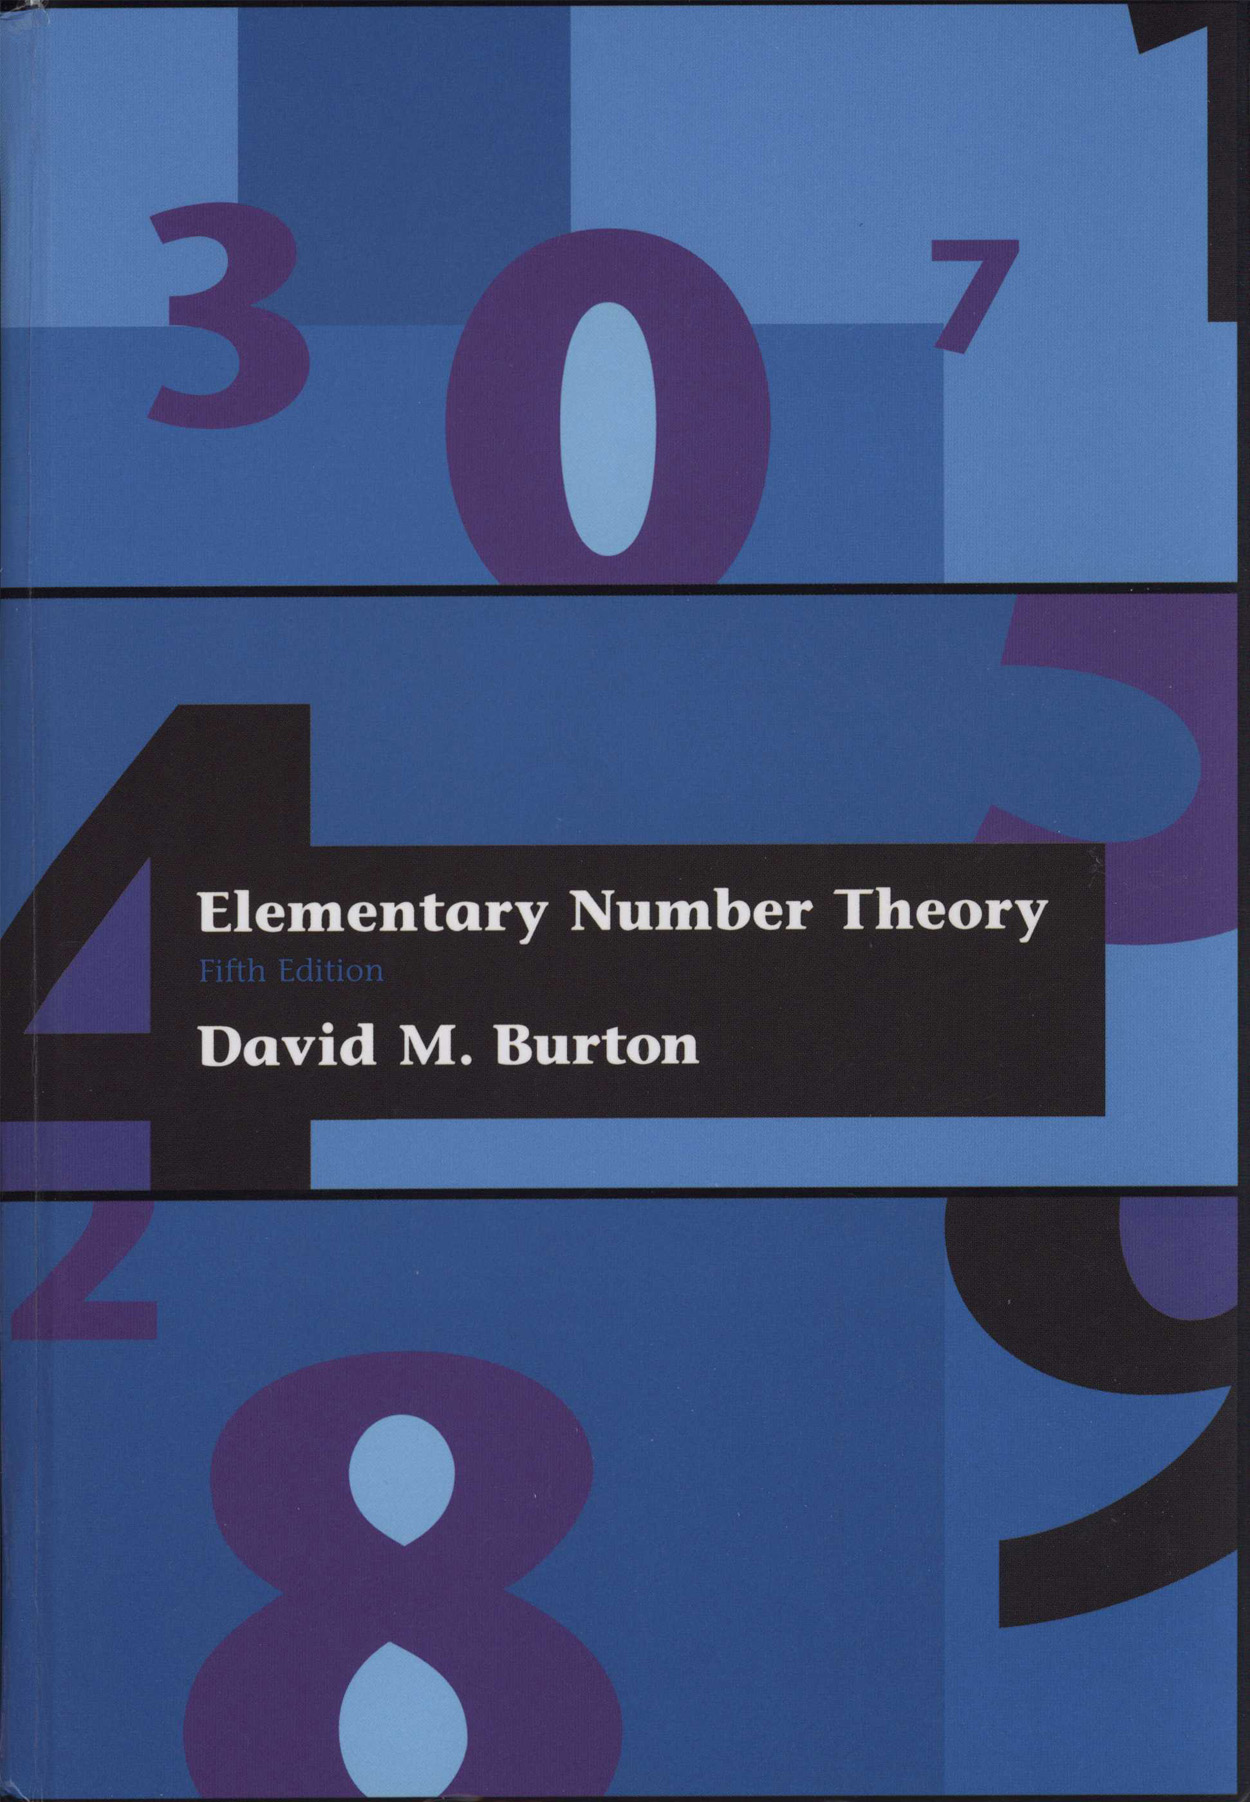 american river software elementary number theory by david m burton rh americanriver com student's solutions manual elementary number theory by david burton Elementary Number Theory Questions